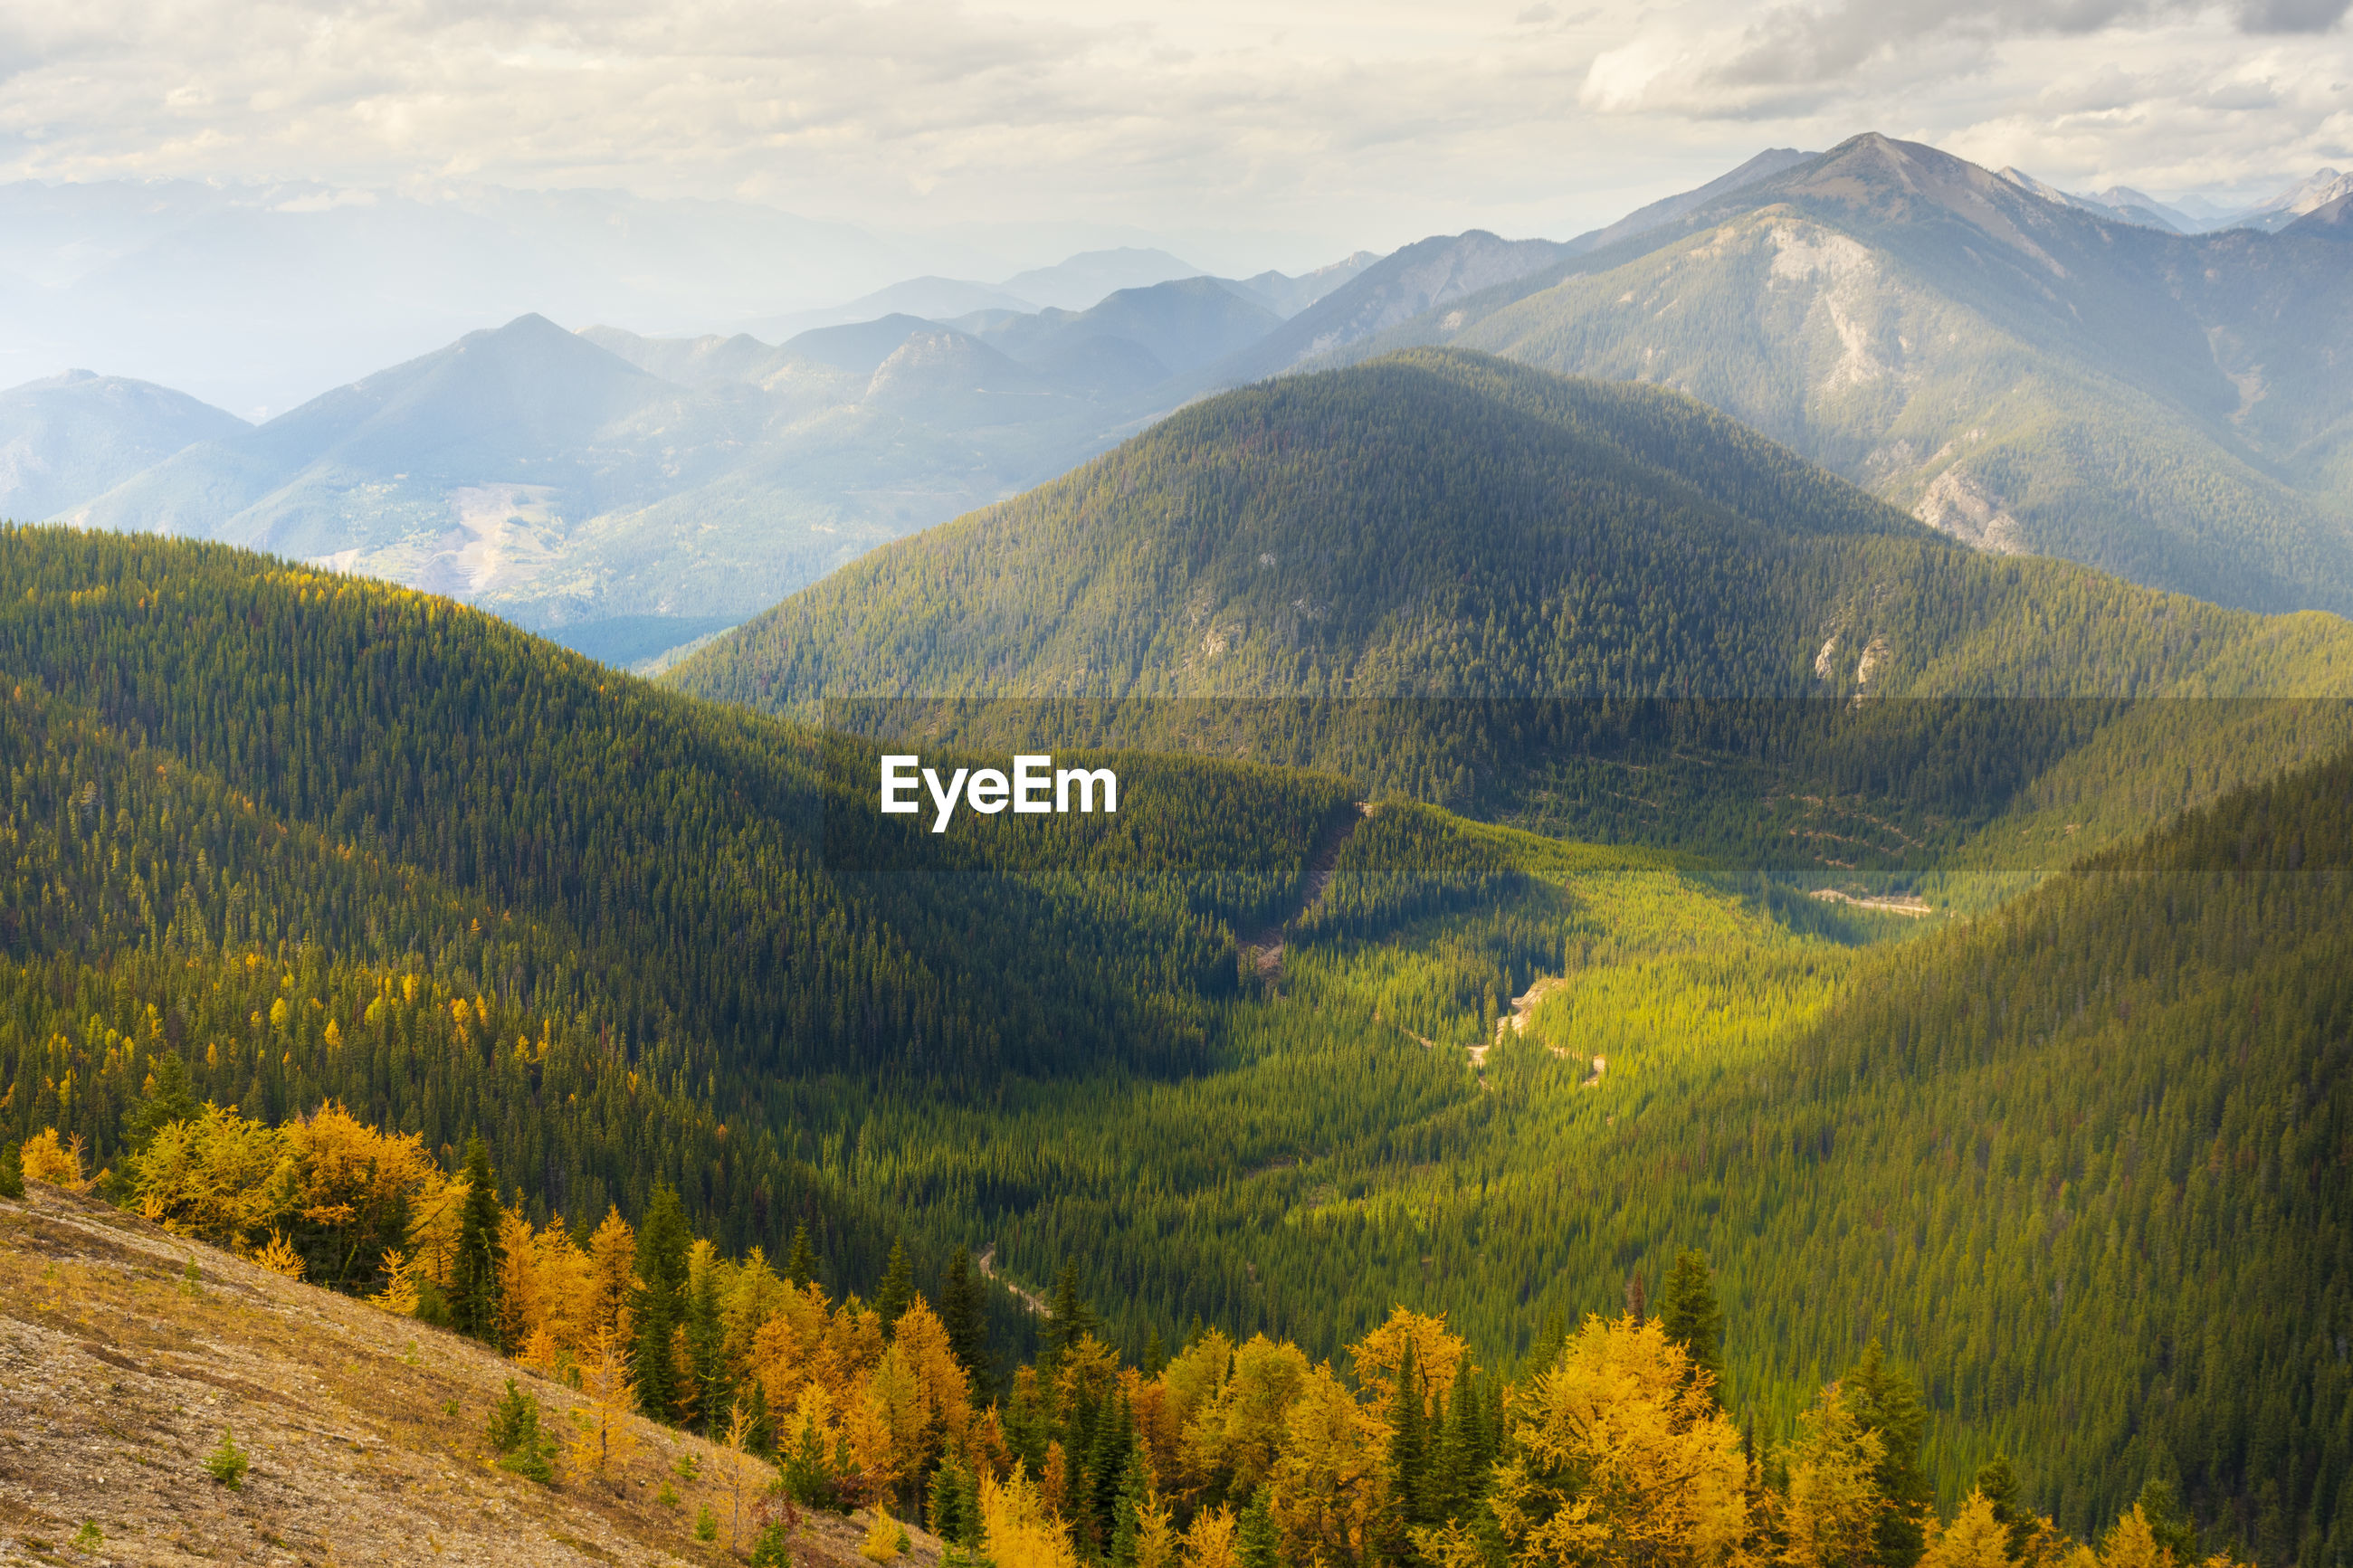 SCENIC VIEW OF PINE TREES AGAINST MOUNTAINS